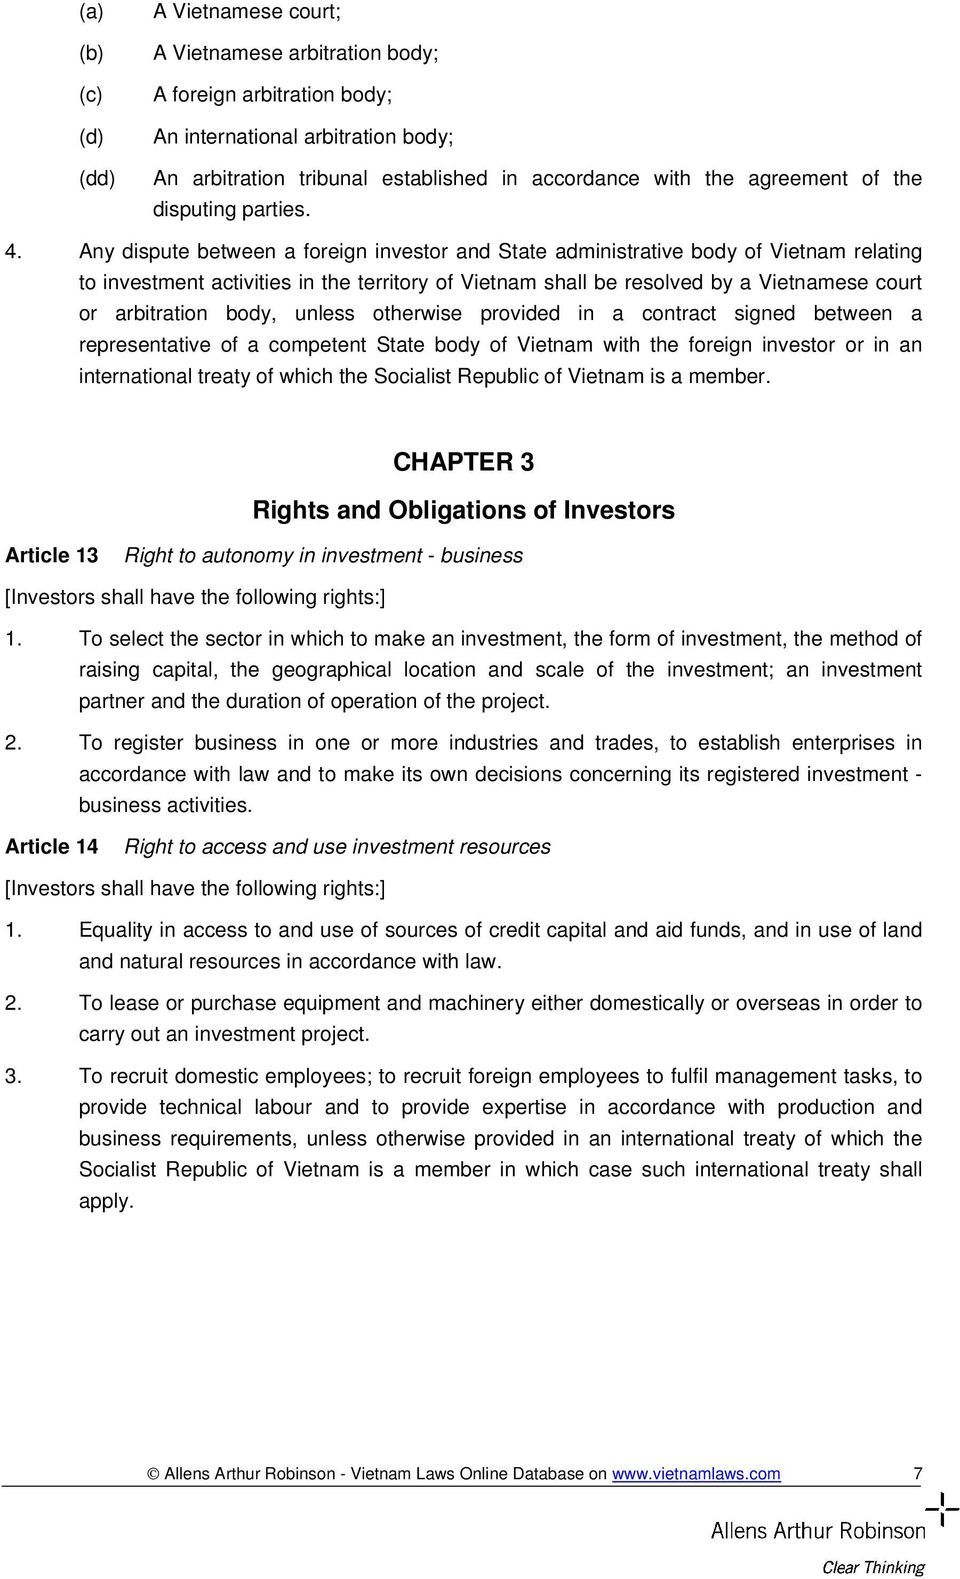 Any dispute between a foreign investor and State administrative body of Vietnam relating to investment activities in the territory of Vietnam shall be resolved by a Vietnamese court or arbitration